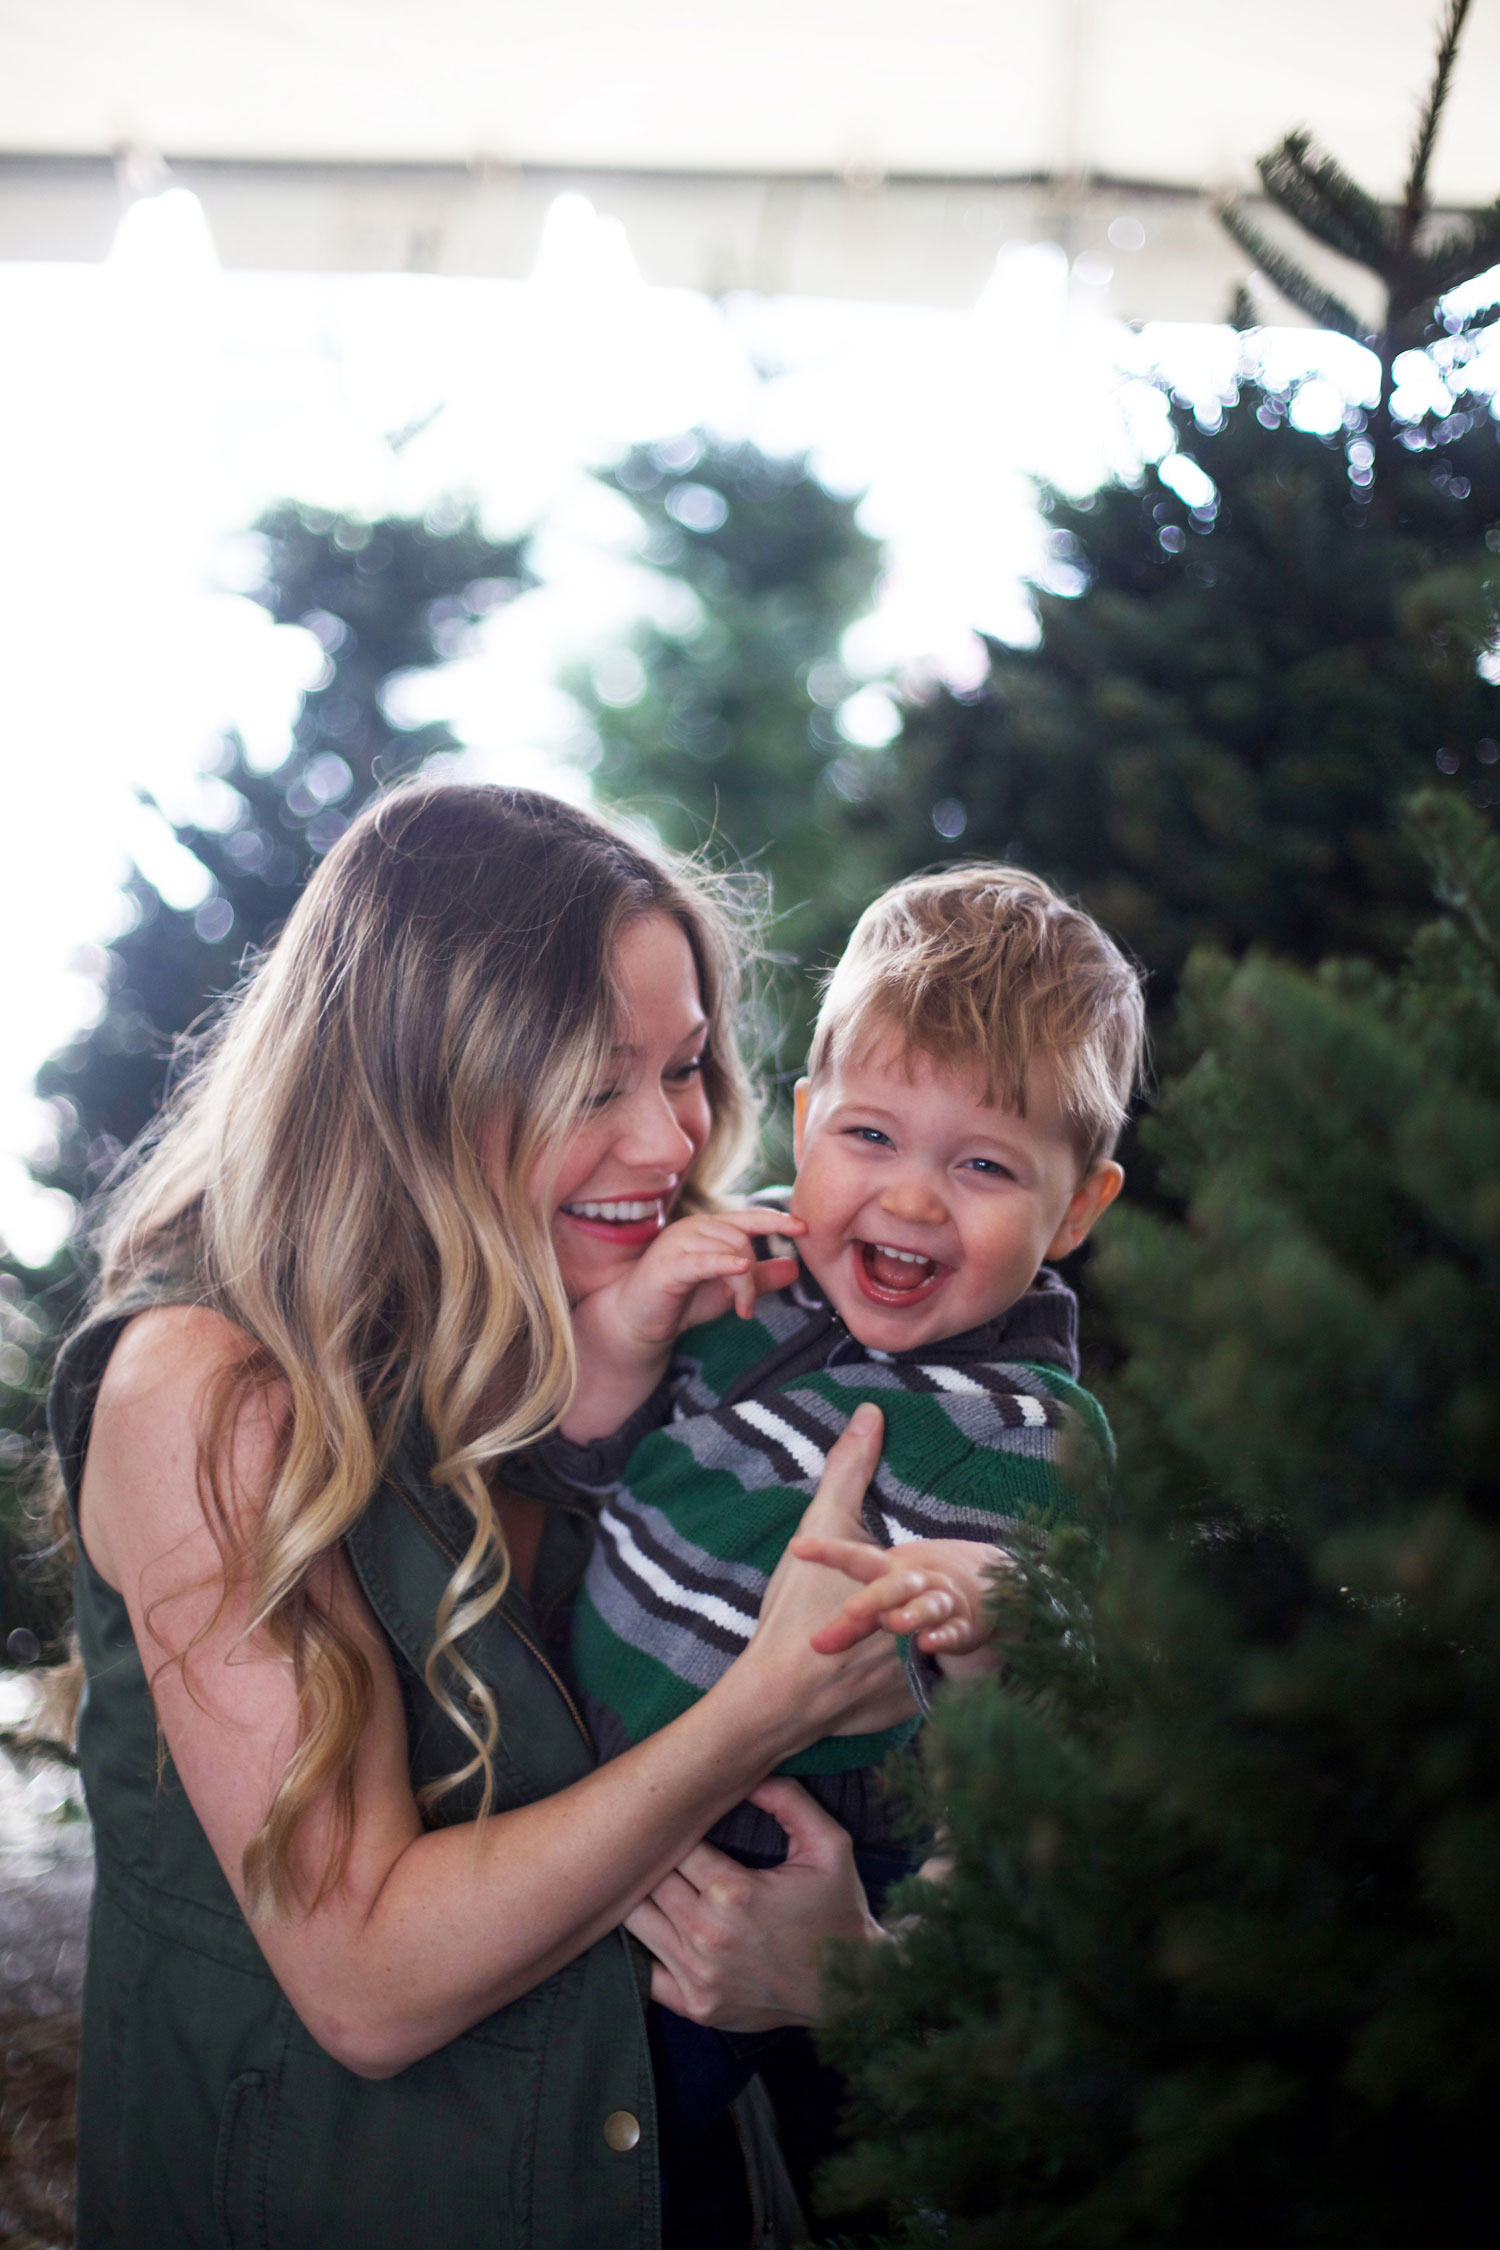 mother and son photo shoot ideas